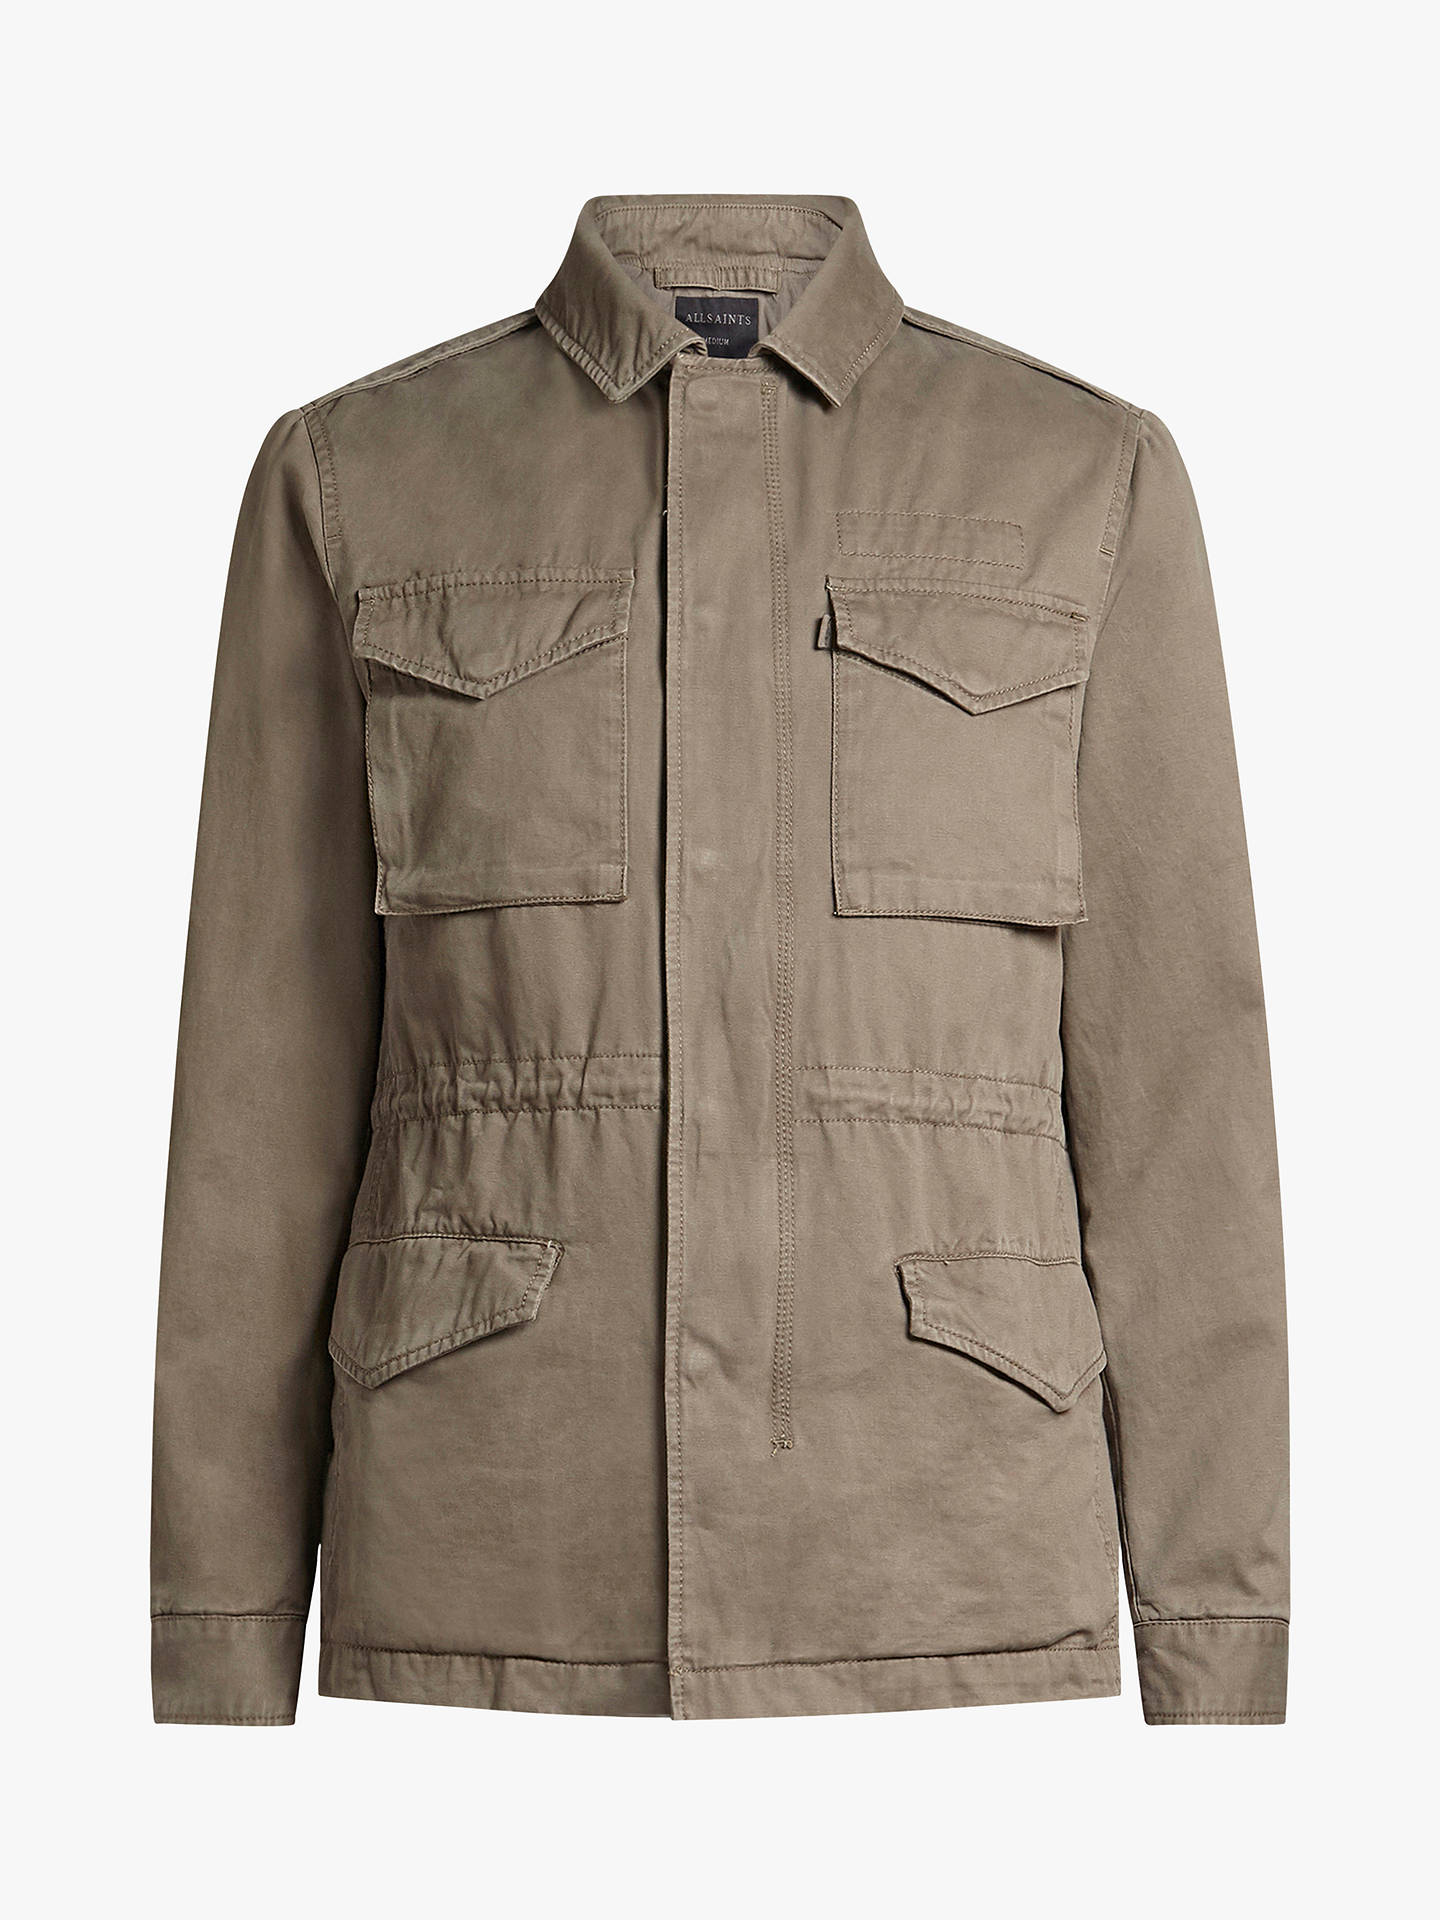 Buy AllSaints Cote Military Jacket, Dusty Olive, XS Online at johnlewis.com